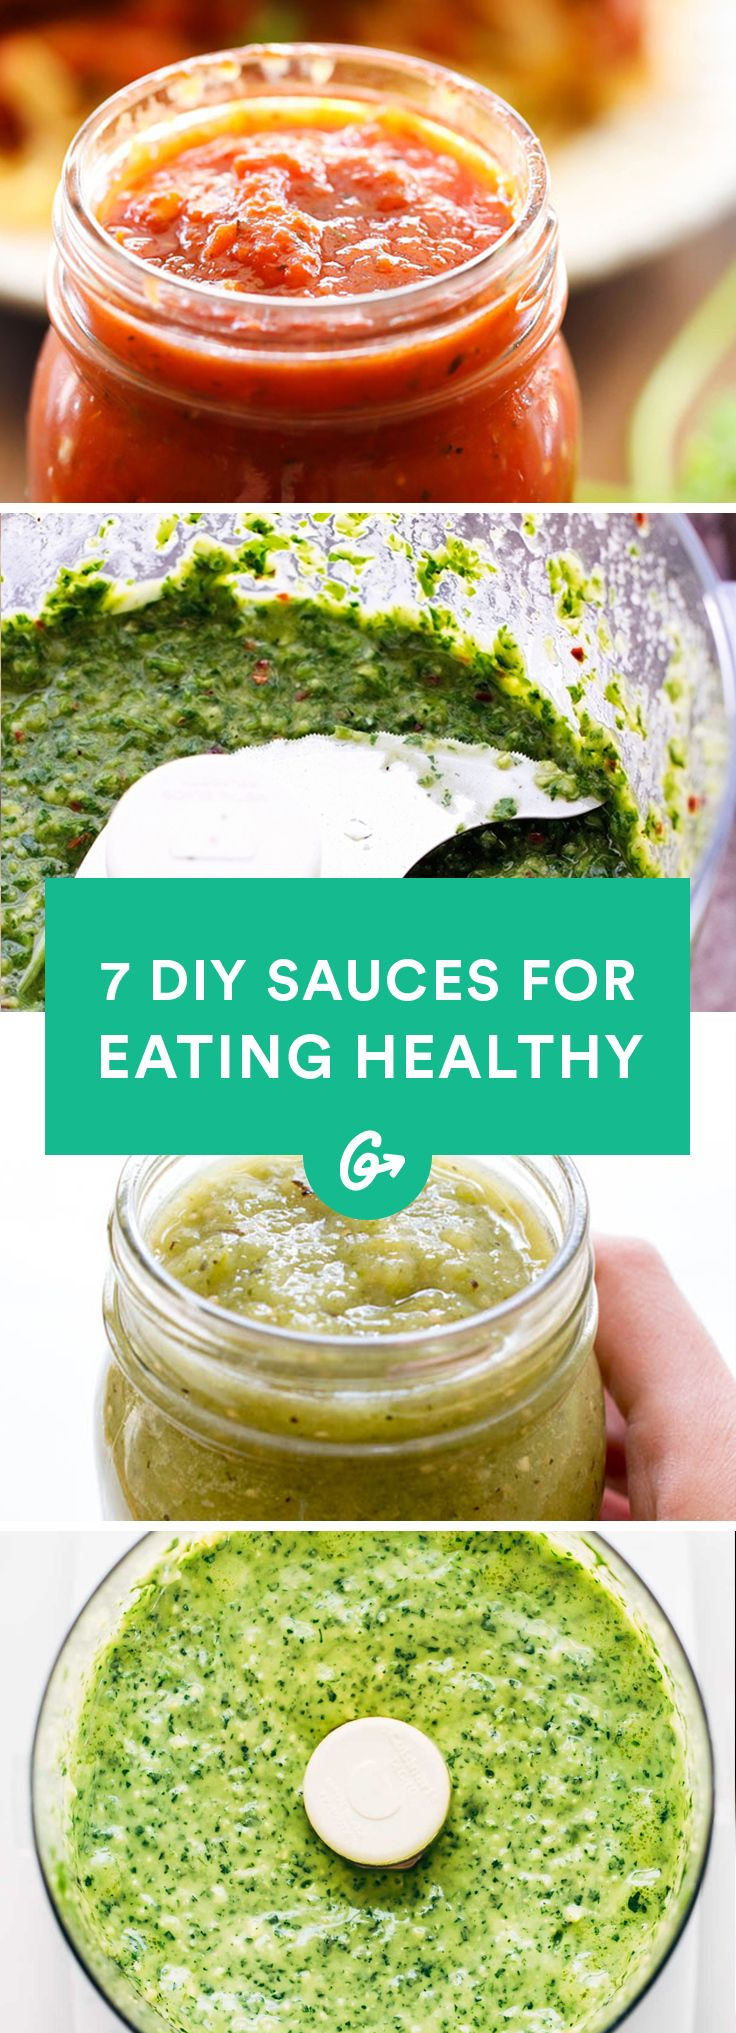 7 Easy Homemade Sauces to Spice up Any Meal http://greatist.com/eat/sauce-recipes-spice-up-meal